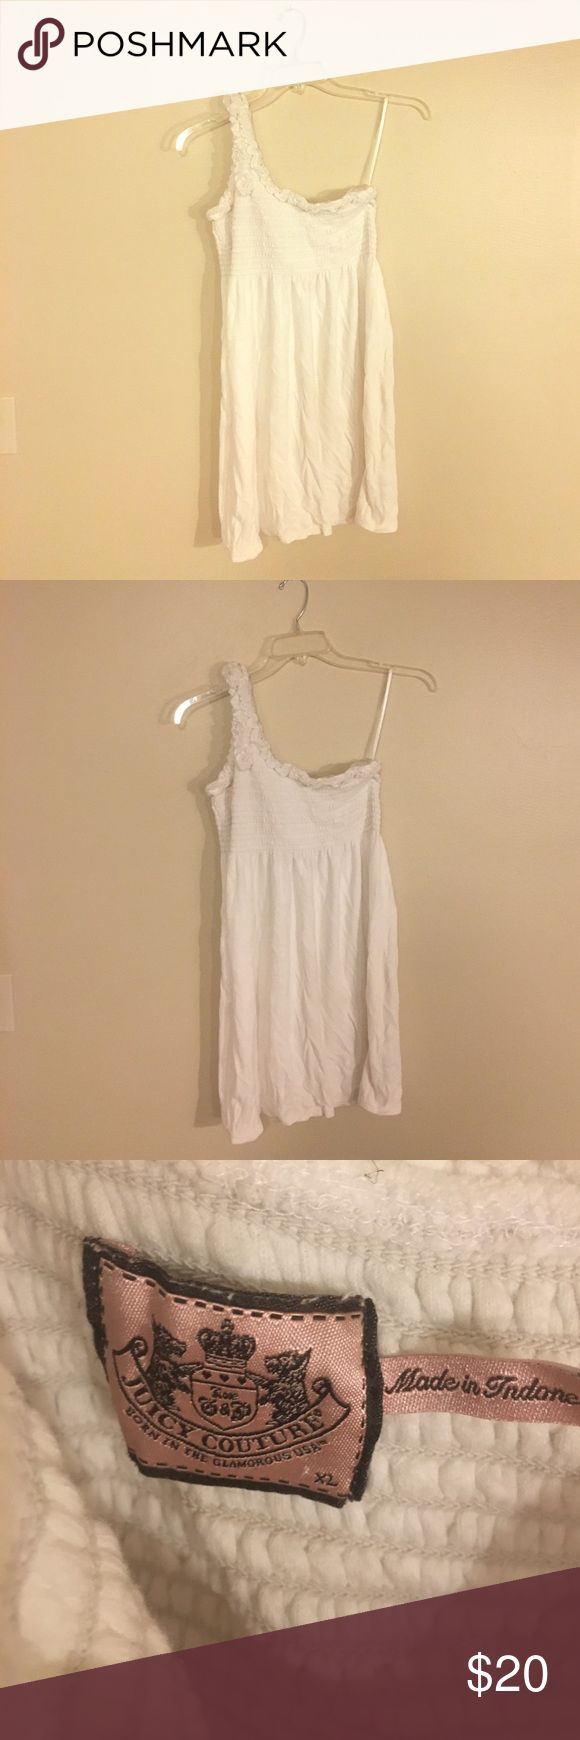 🌞Sale🌞Juicy Couture White Terry Cloth Dress XL Juicy Couture - White - Terry Cloth- One shoulder Swim Cover up or summer dress. XL. Great condition. Juicy Couture Dresses One Shoulder